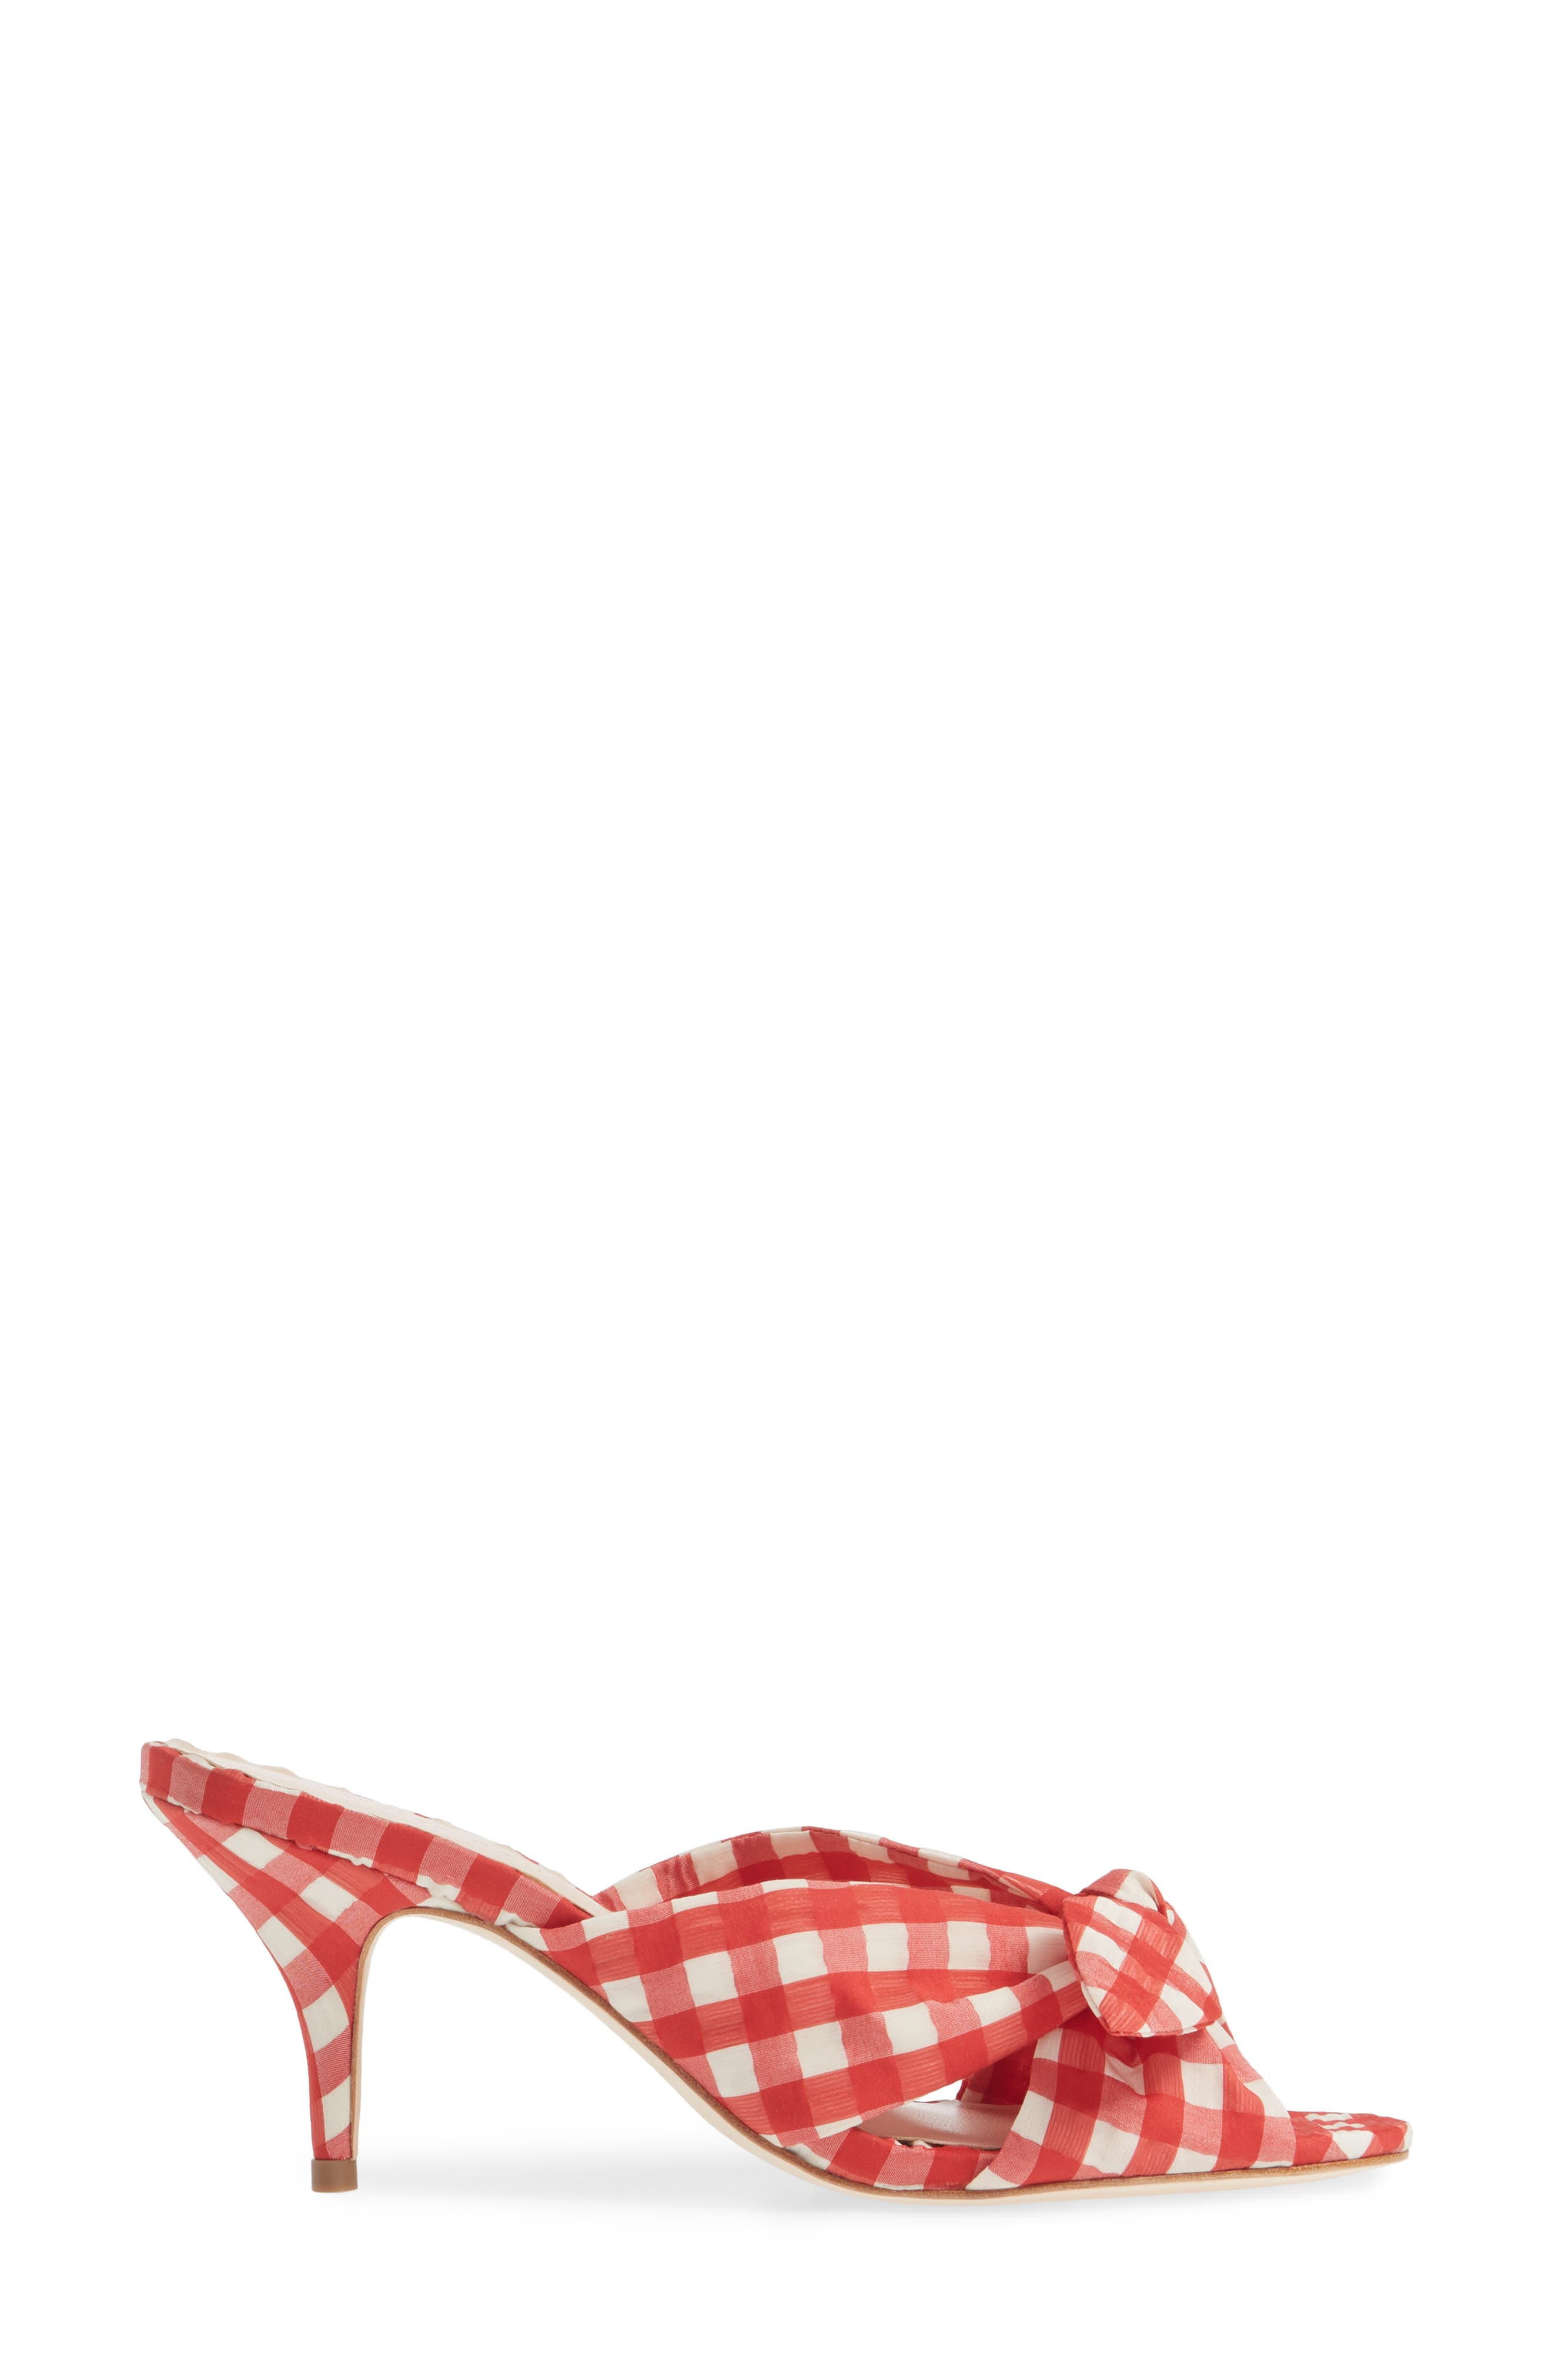 LOEFFLER RANDALL,                             Luisa Sandal,                             Alternate thumbnail 3, color,                             RED